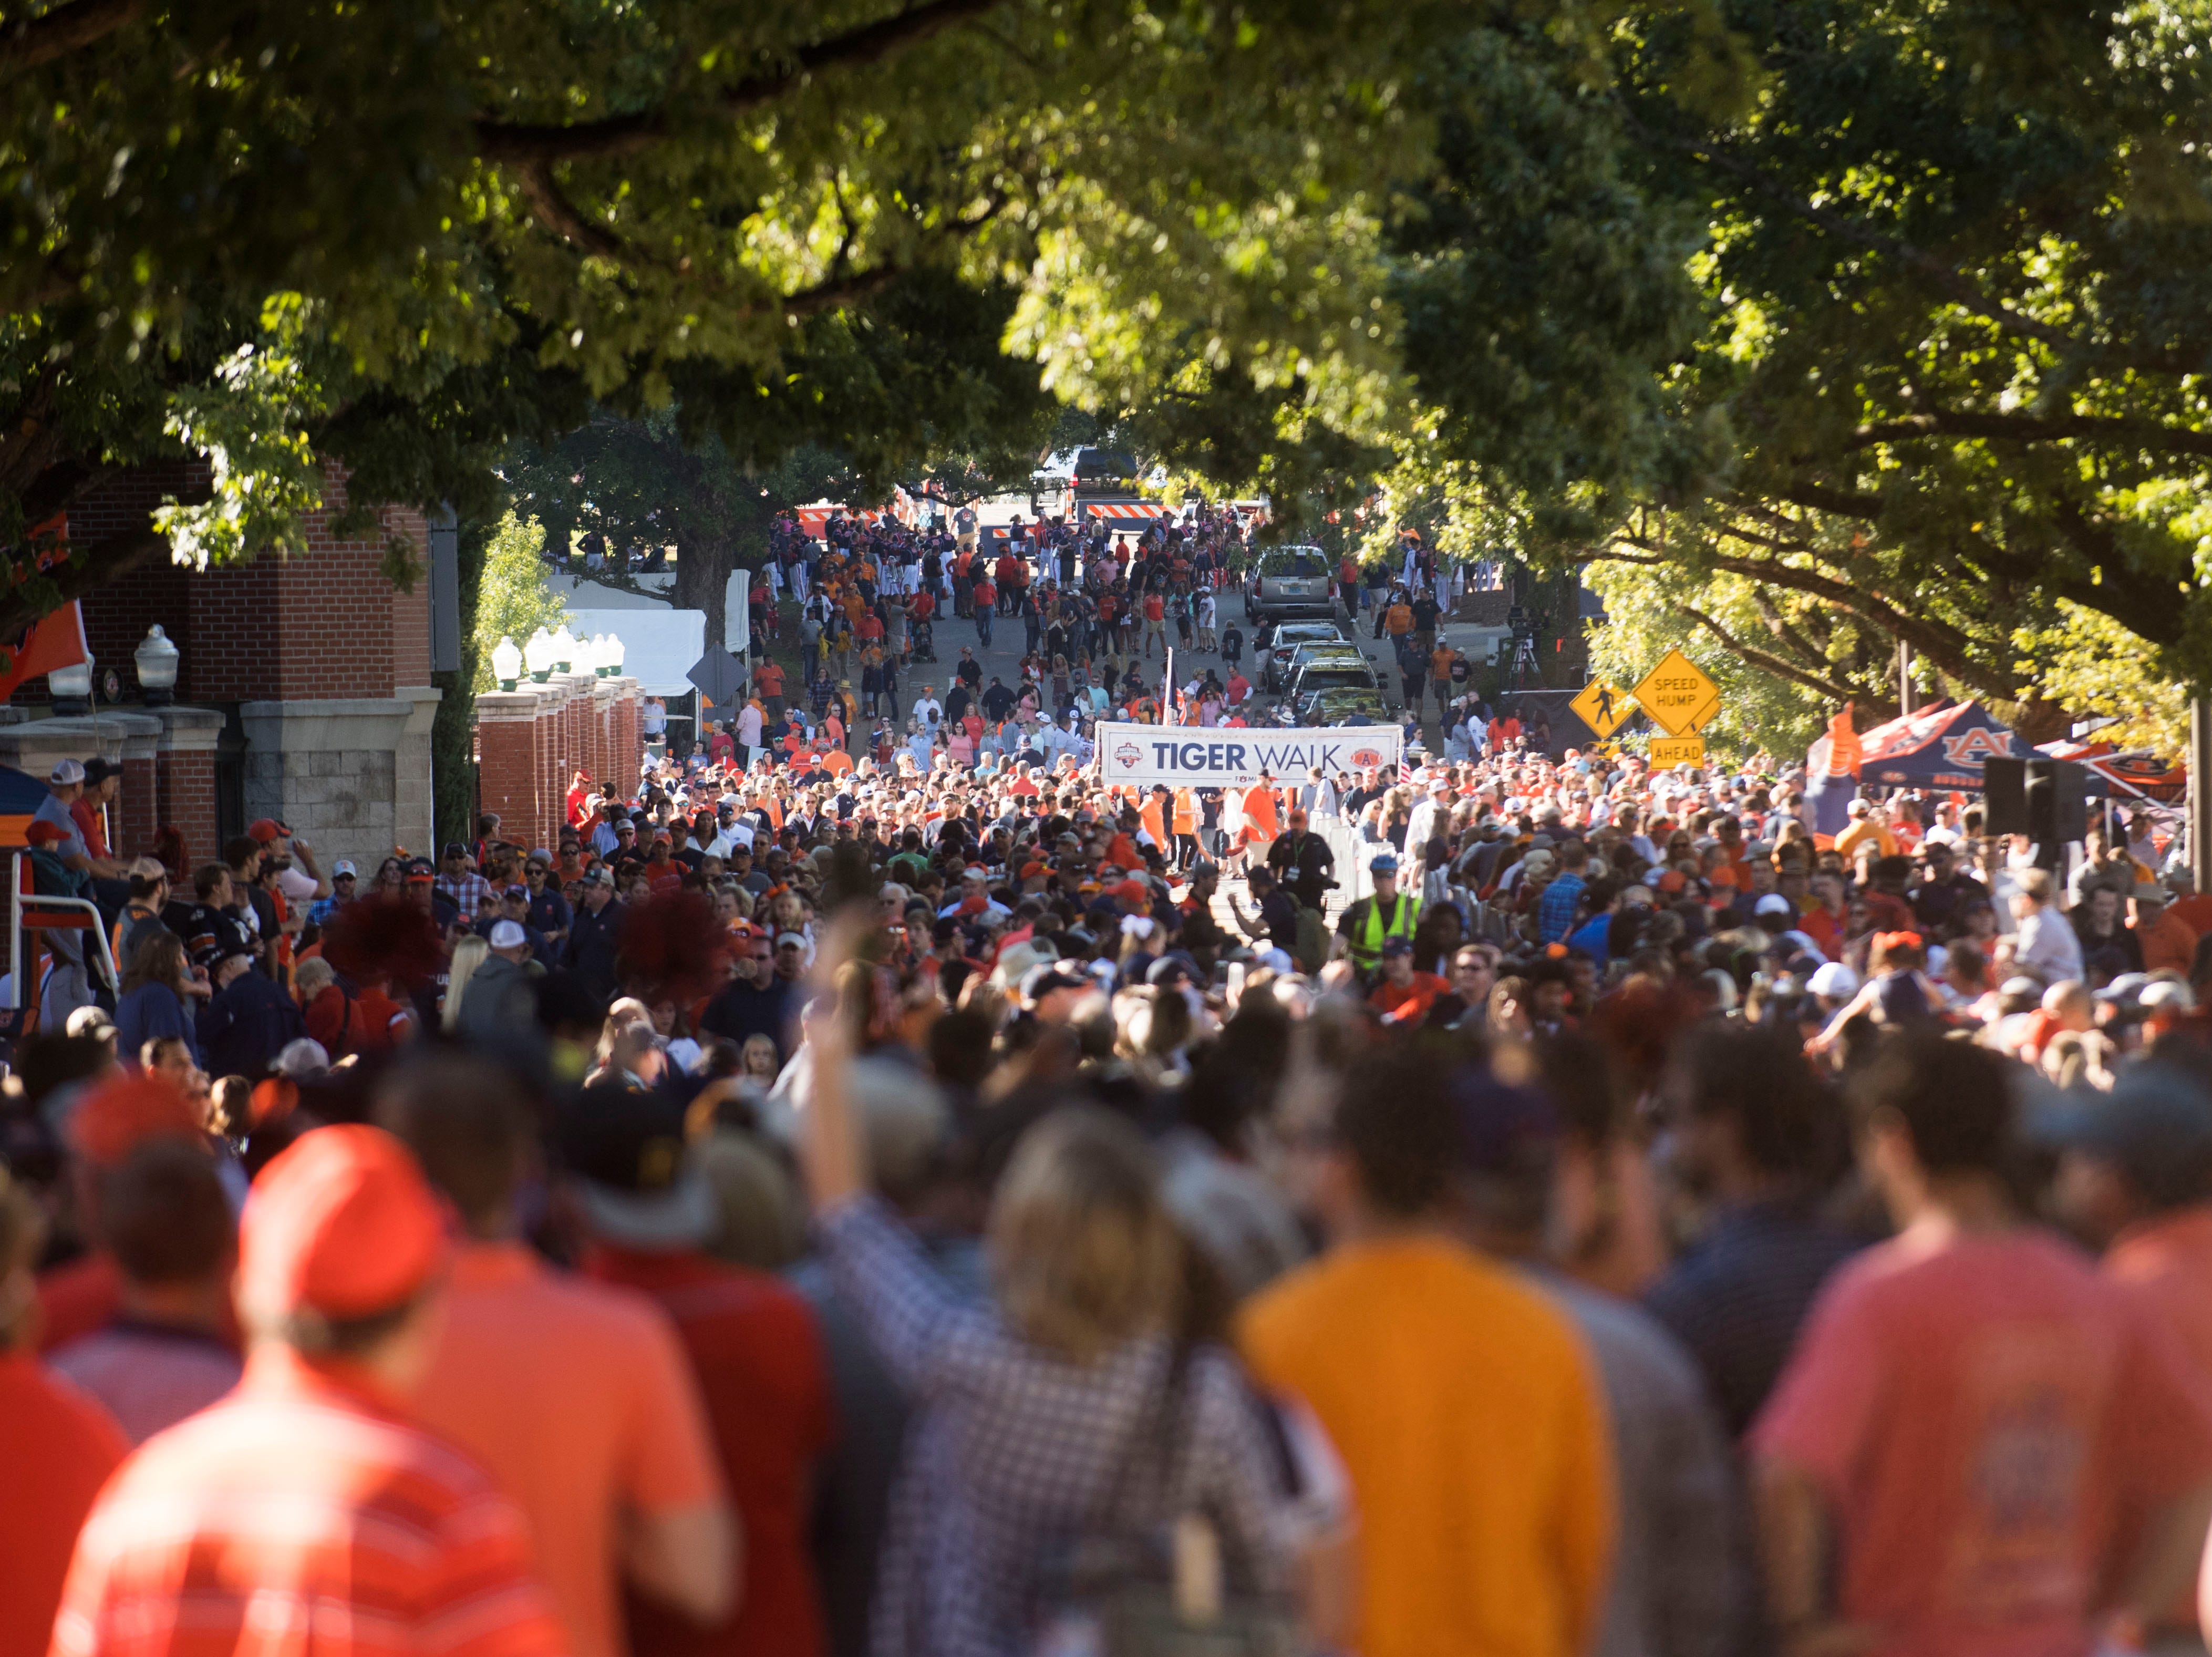 Auburn fans gather for the tiger walk before a game between Tennessee and Auburn at Jordan-Hare Stadium in Auburn, Ala. Saturday, Oct. 13, 2018.